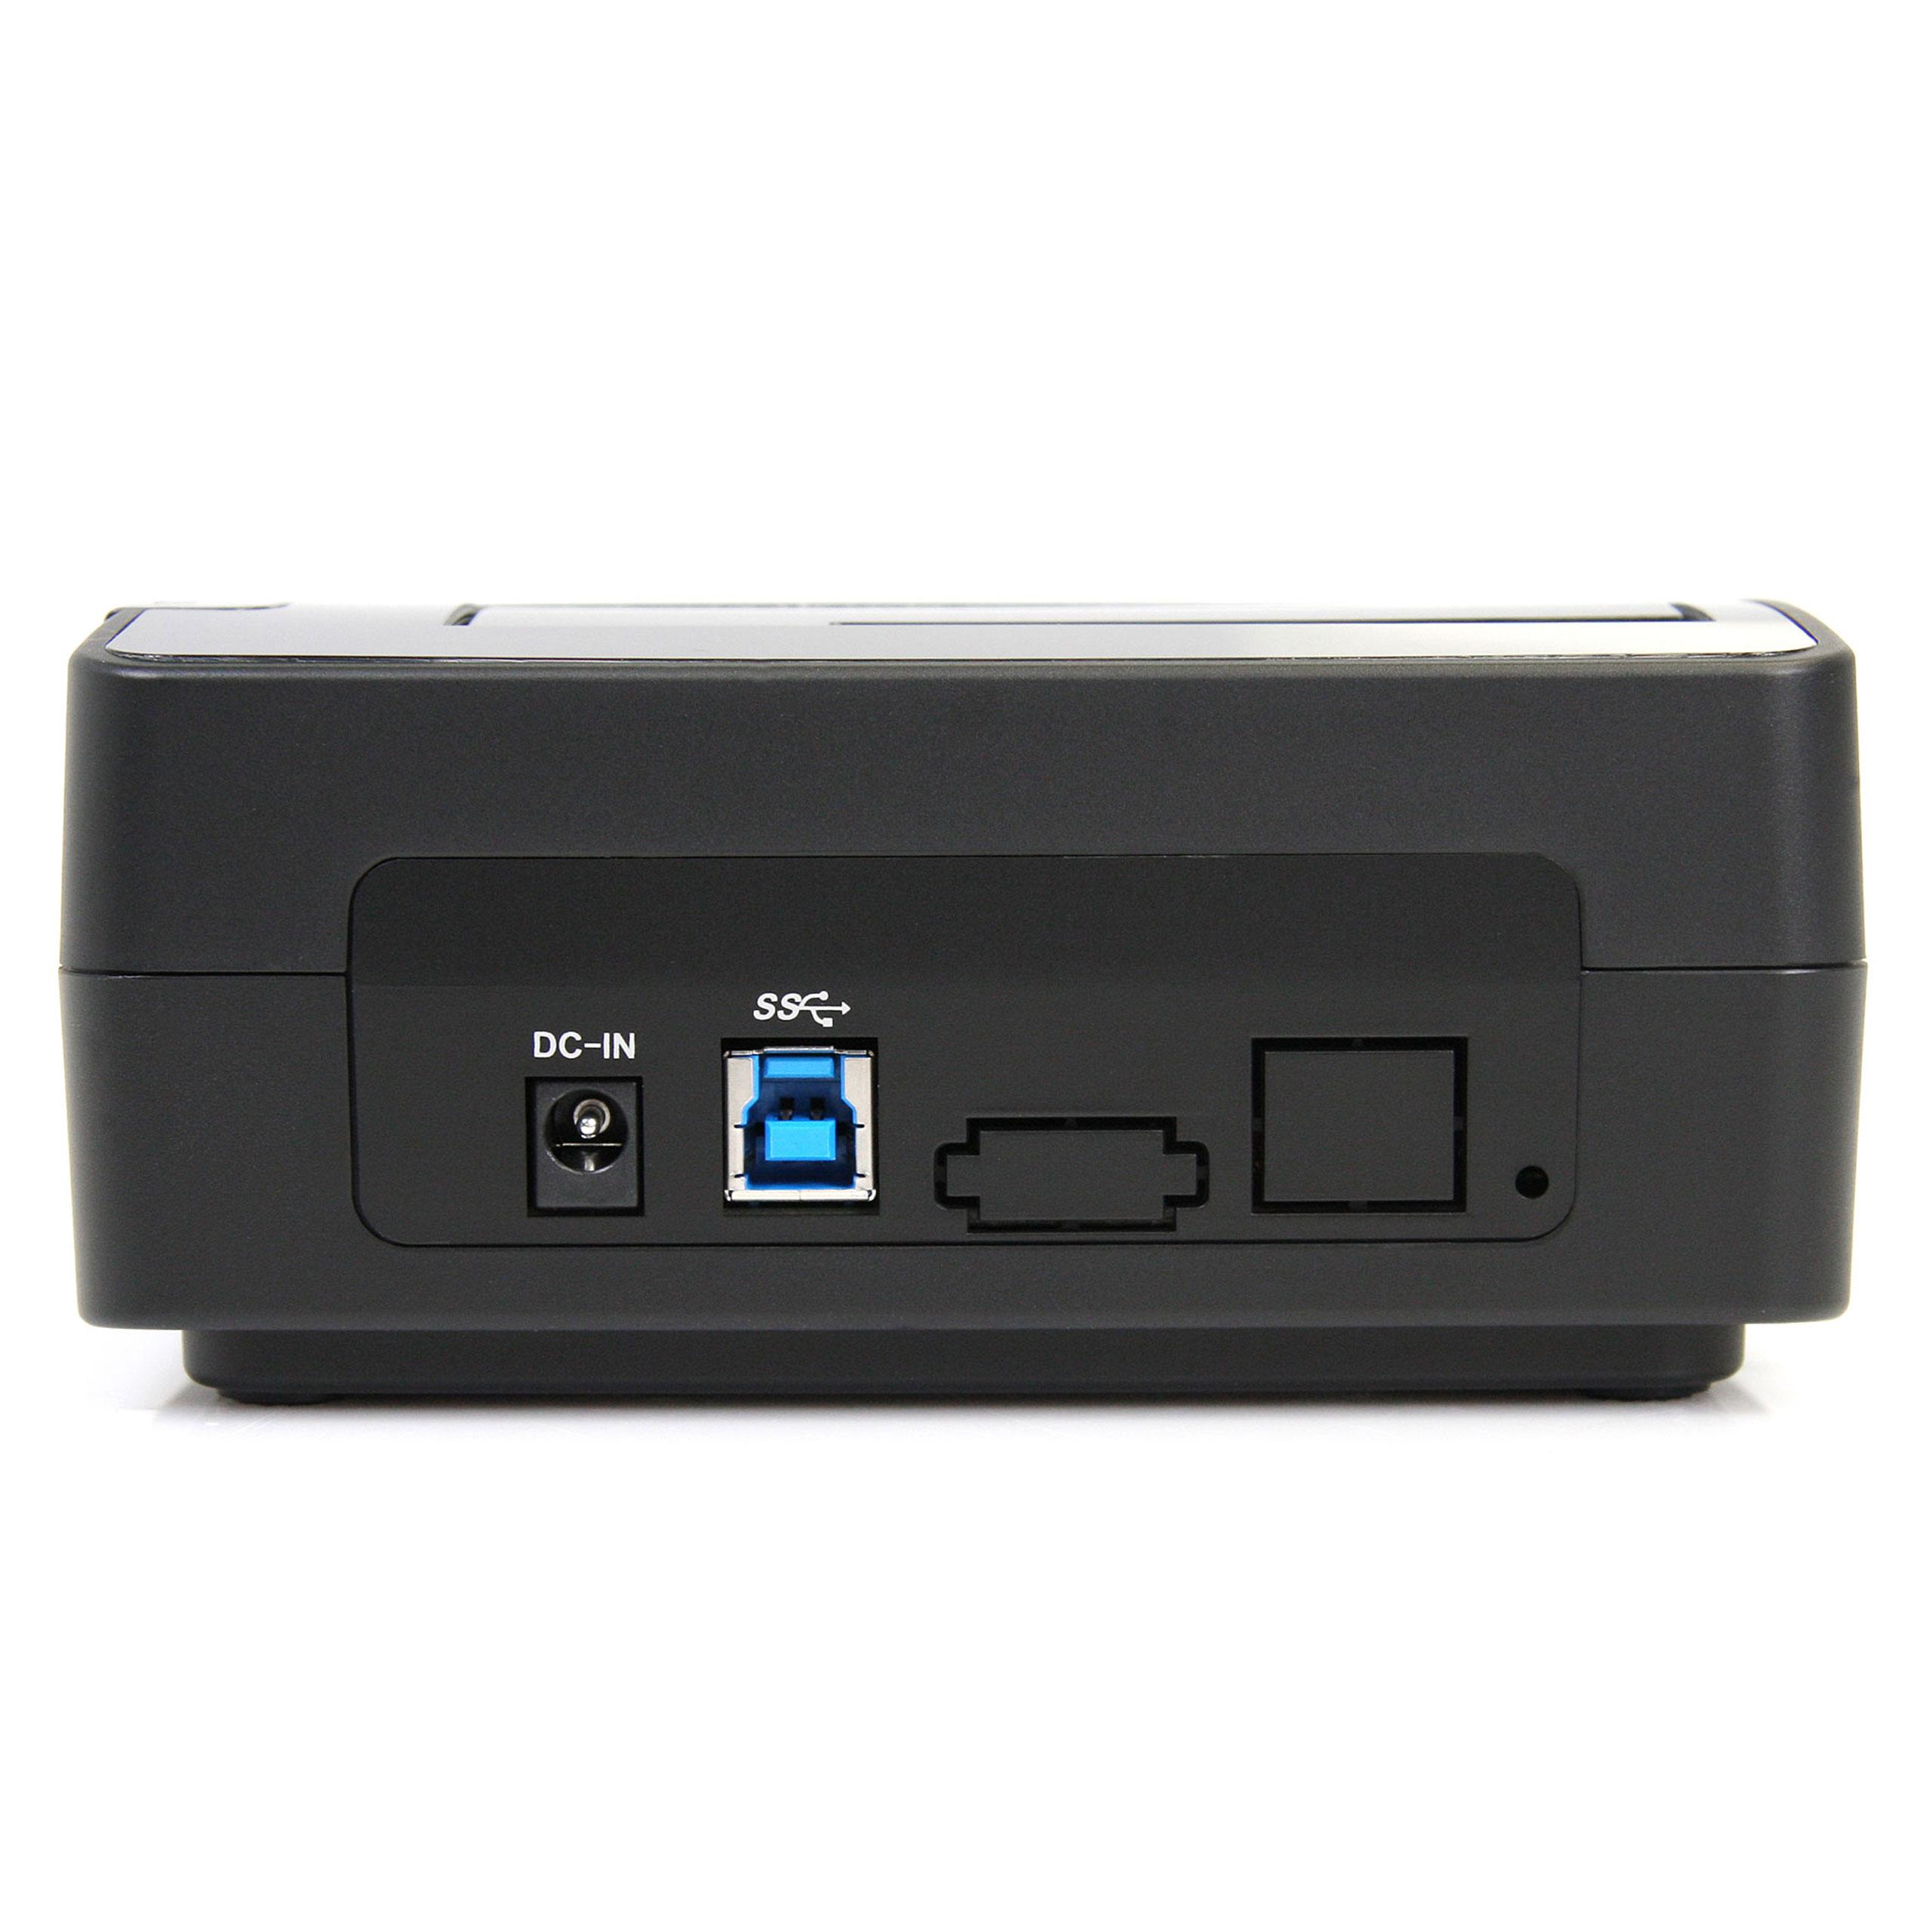 Amazon.com: StarTech.com SuperSpeed USB 3.0 to SATA Hard Drive Docking